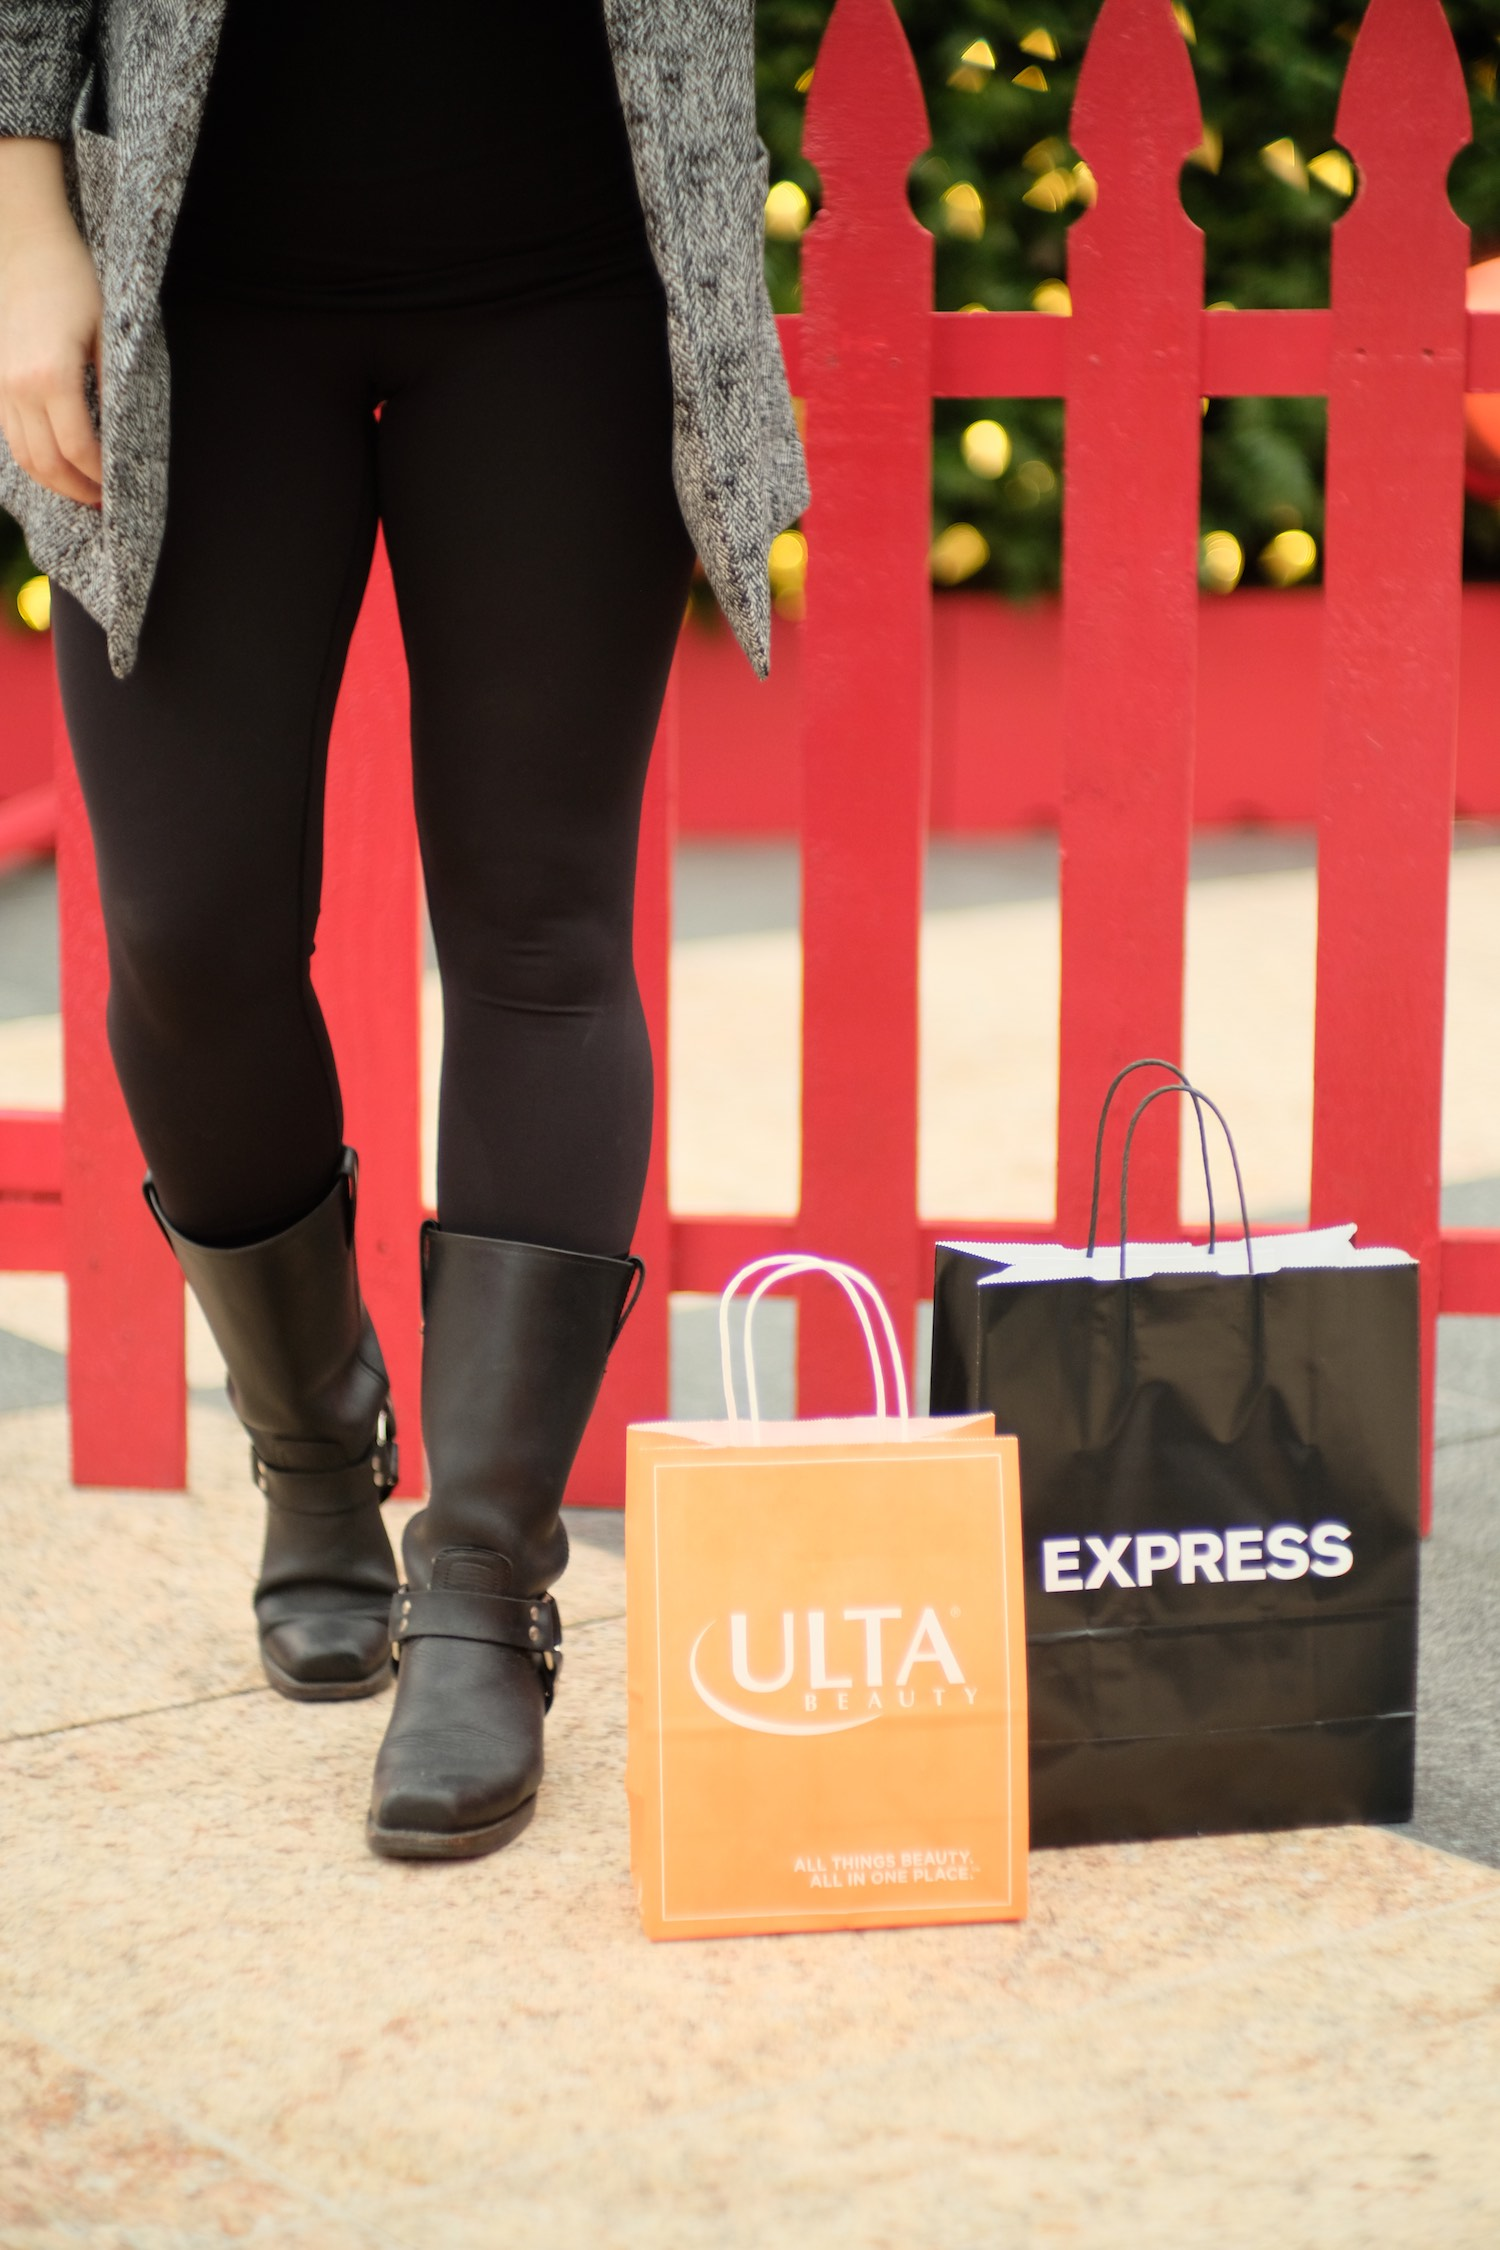 Ulta and Express Shopping Bags